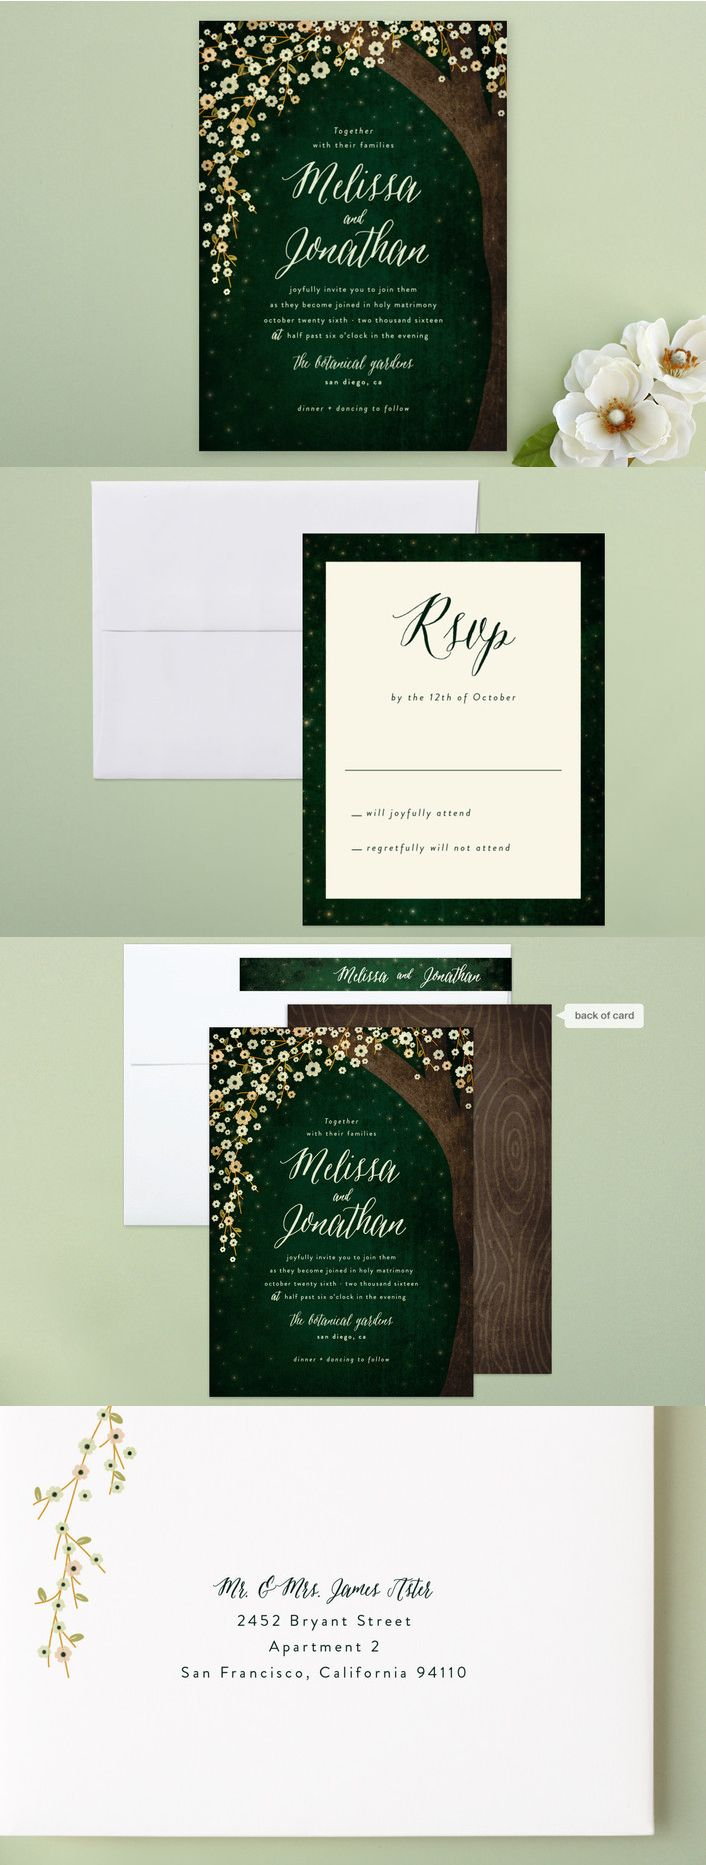 wedding card design software for android%0A   Outside    Customizable Wedding Invitations in Blue by Rebecca Bowen